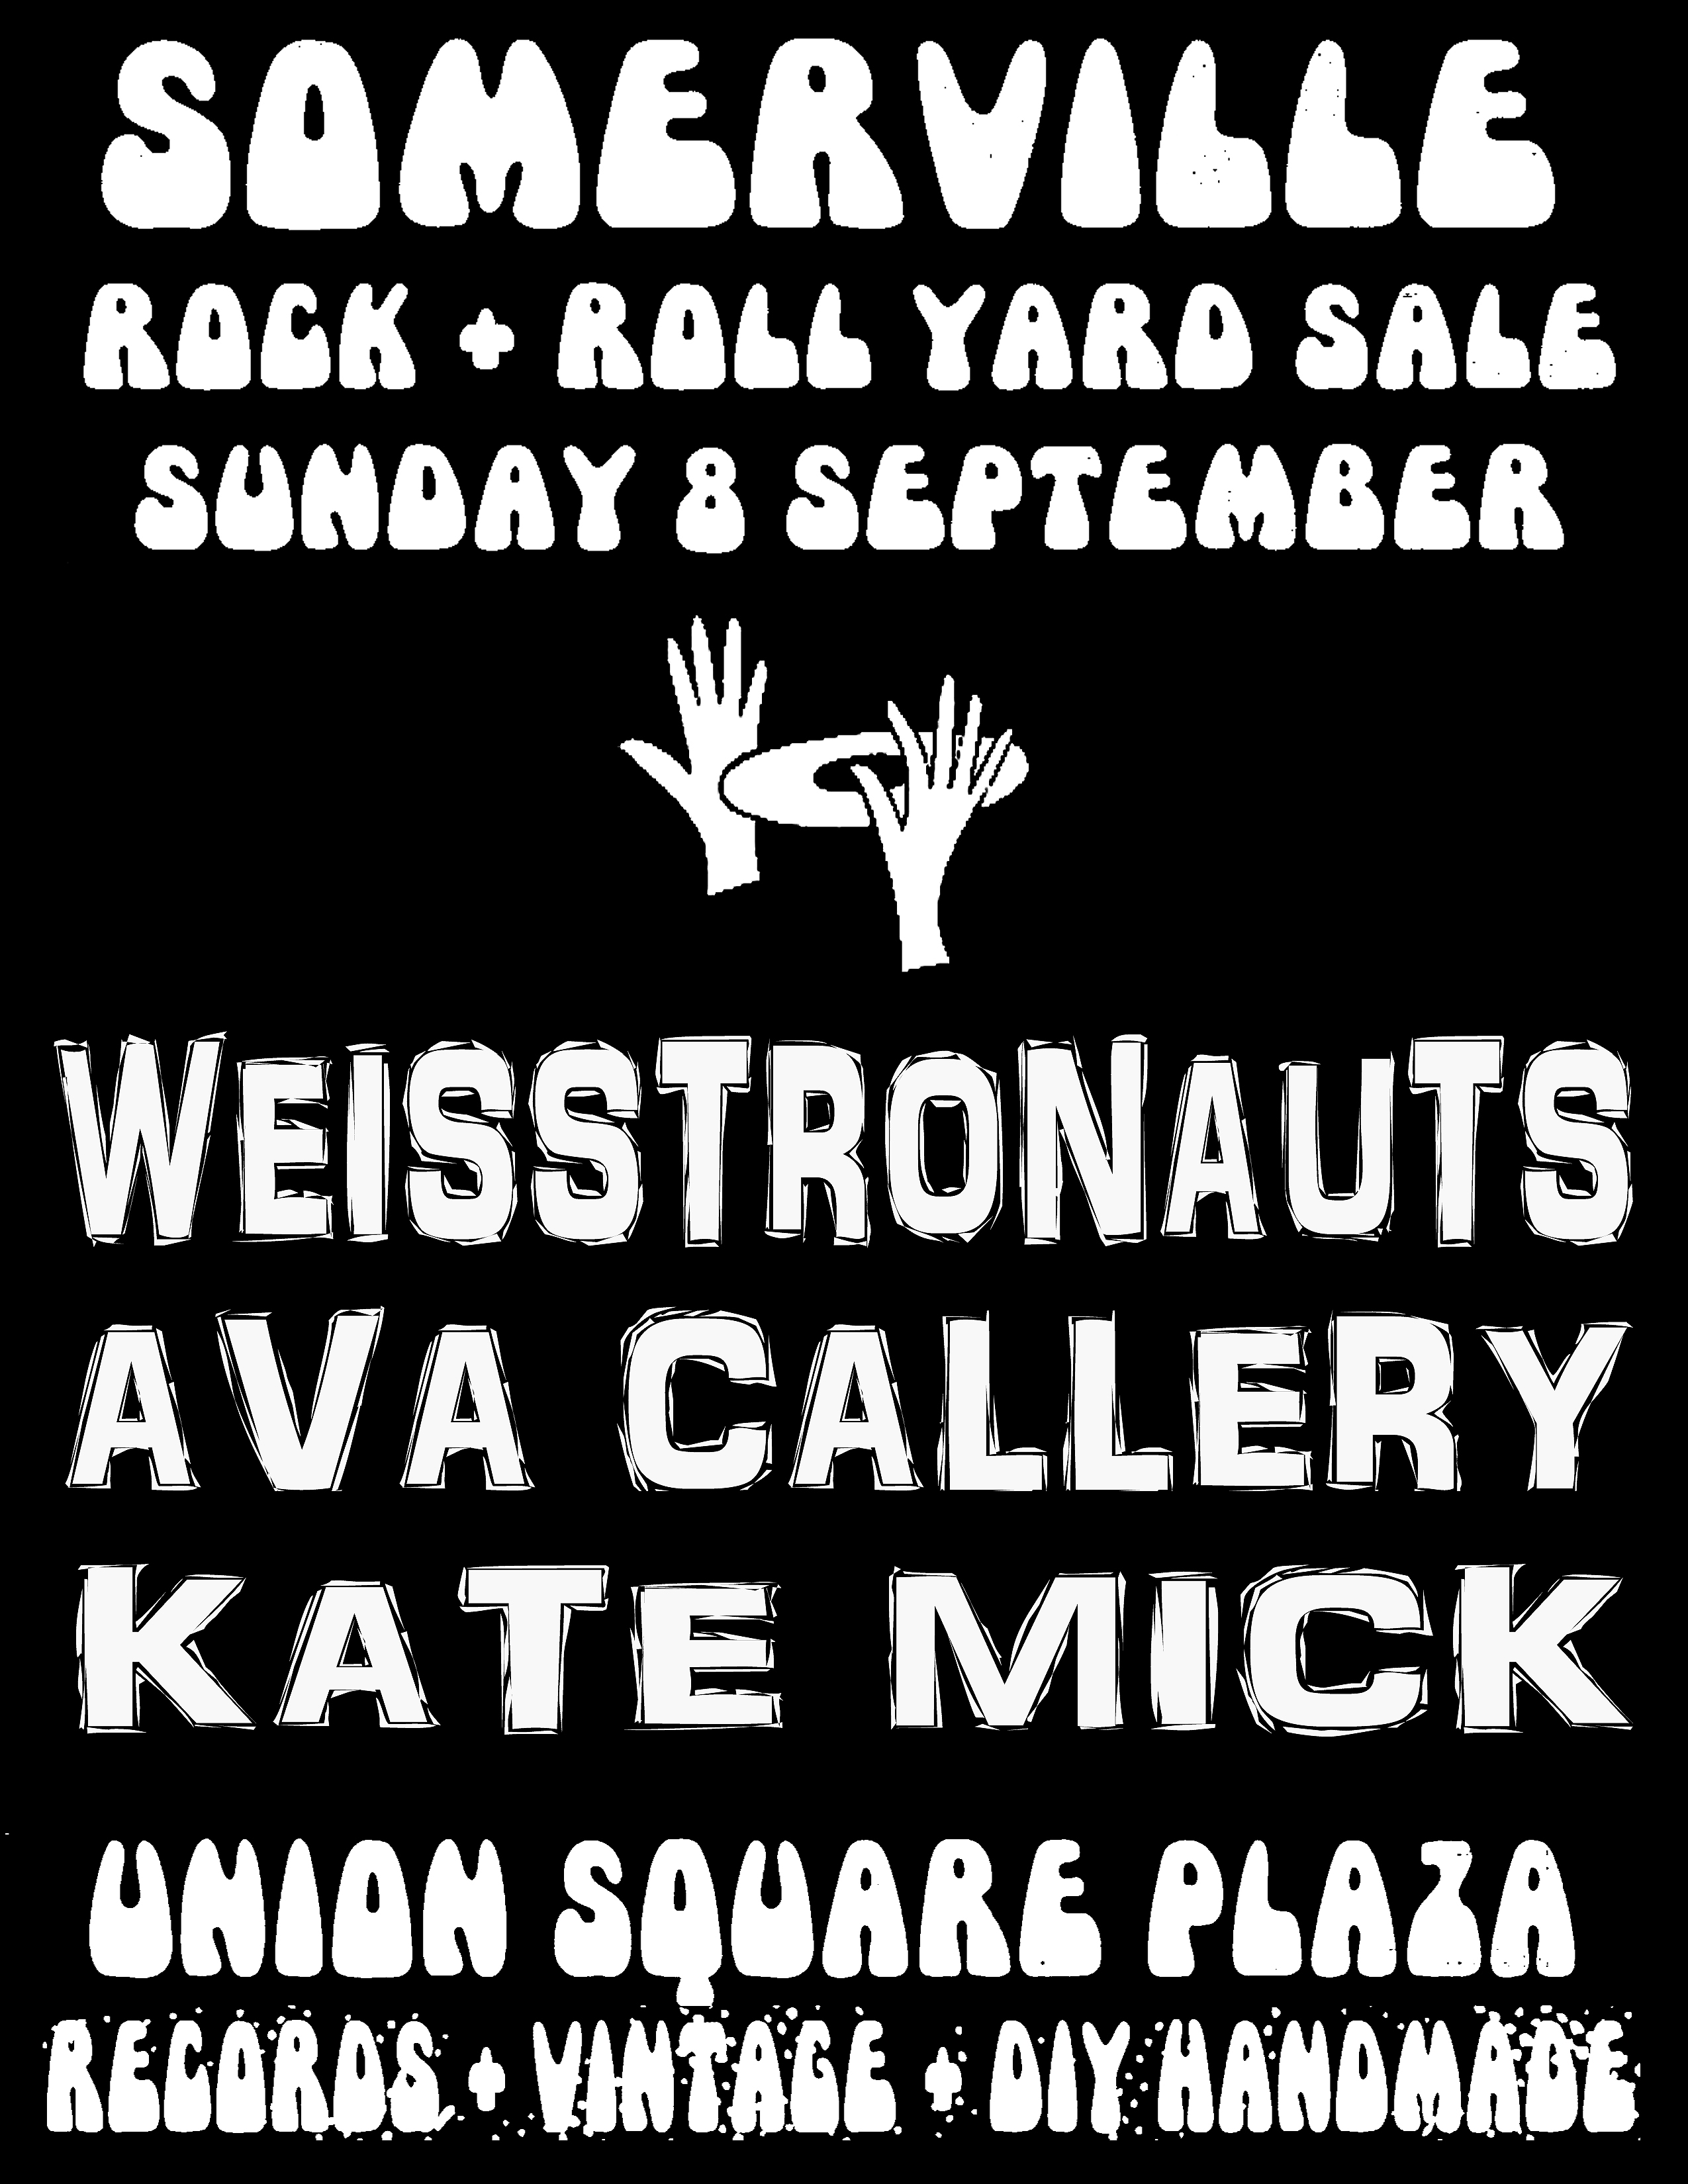 Somerville Rock And Roll Yard Sale Sunday 8th September 2019 Band Poster